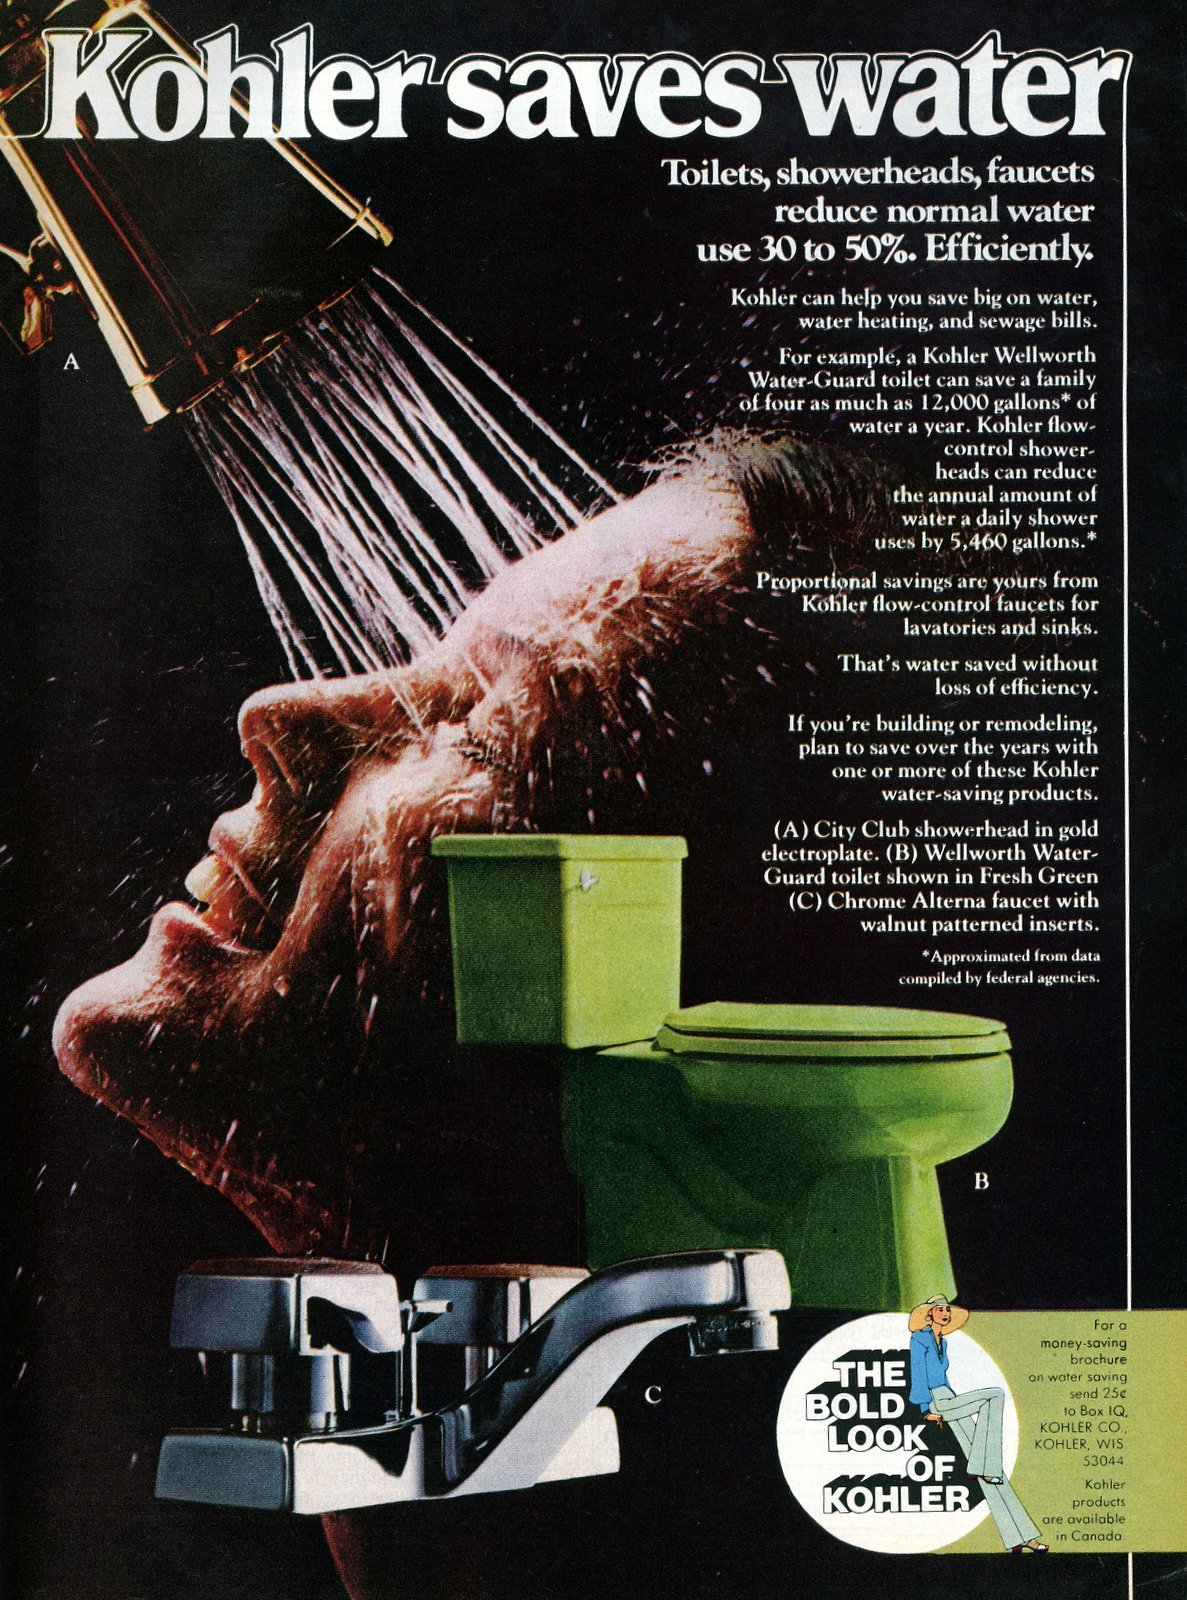 Toilets showerheads faucets to save water (1975)